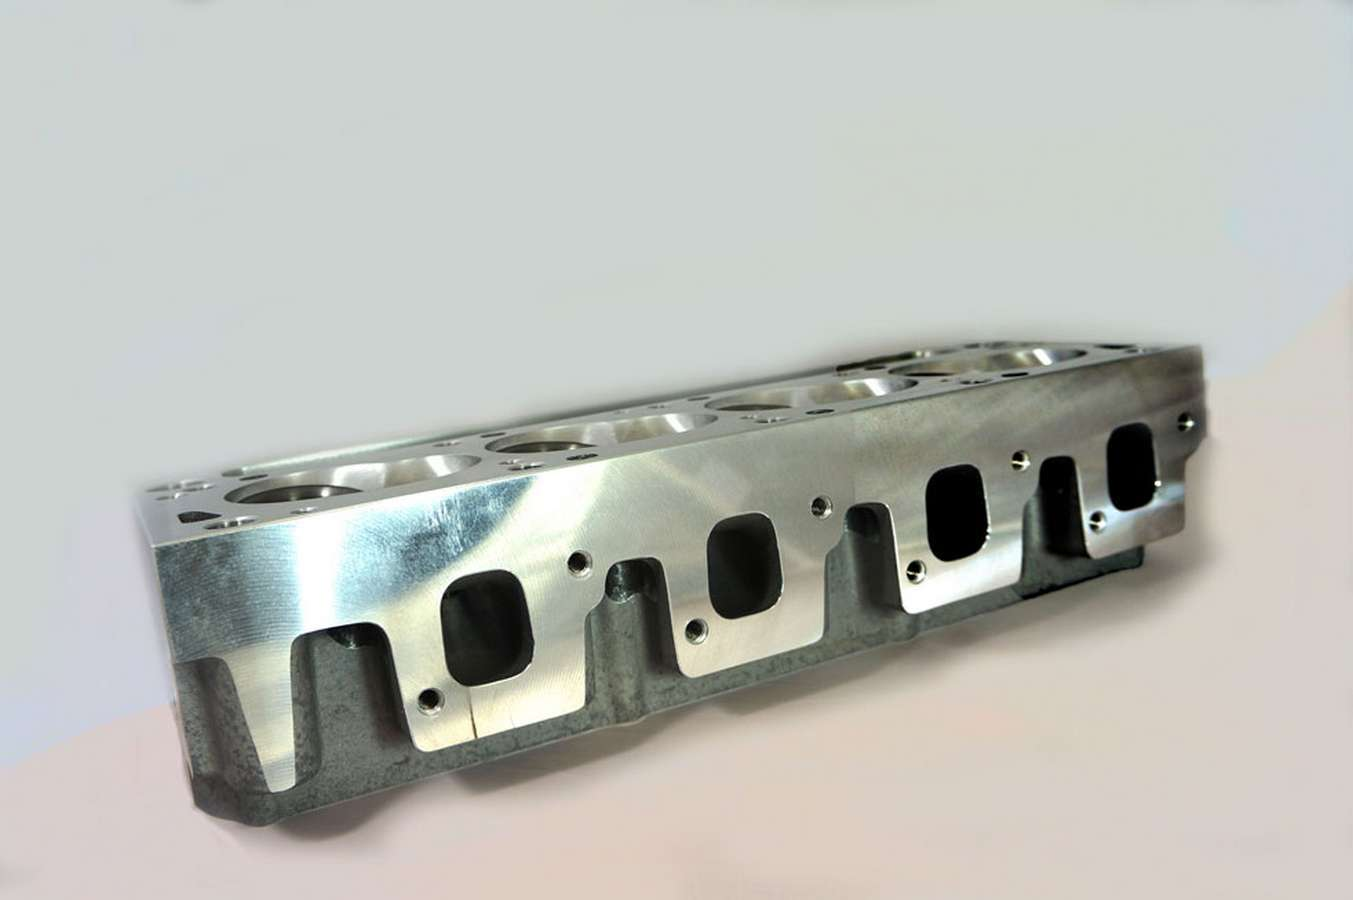 Cylinder Head Innovations SBF2V190B-60 Cylinder Head, 2V, Bare, 2.070 / 1.650 in Valve, 190 cc Intake, 60 cc Chamber, Aluminum, Ford Cleveland / Modified, Each